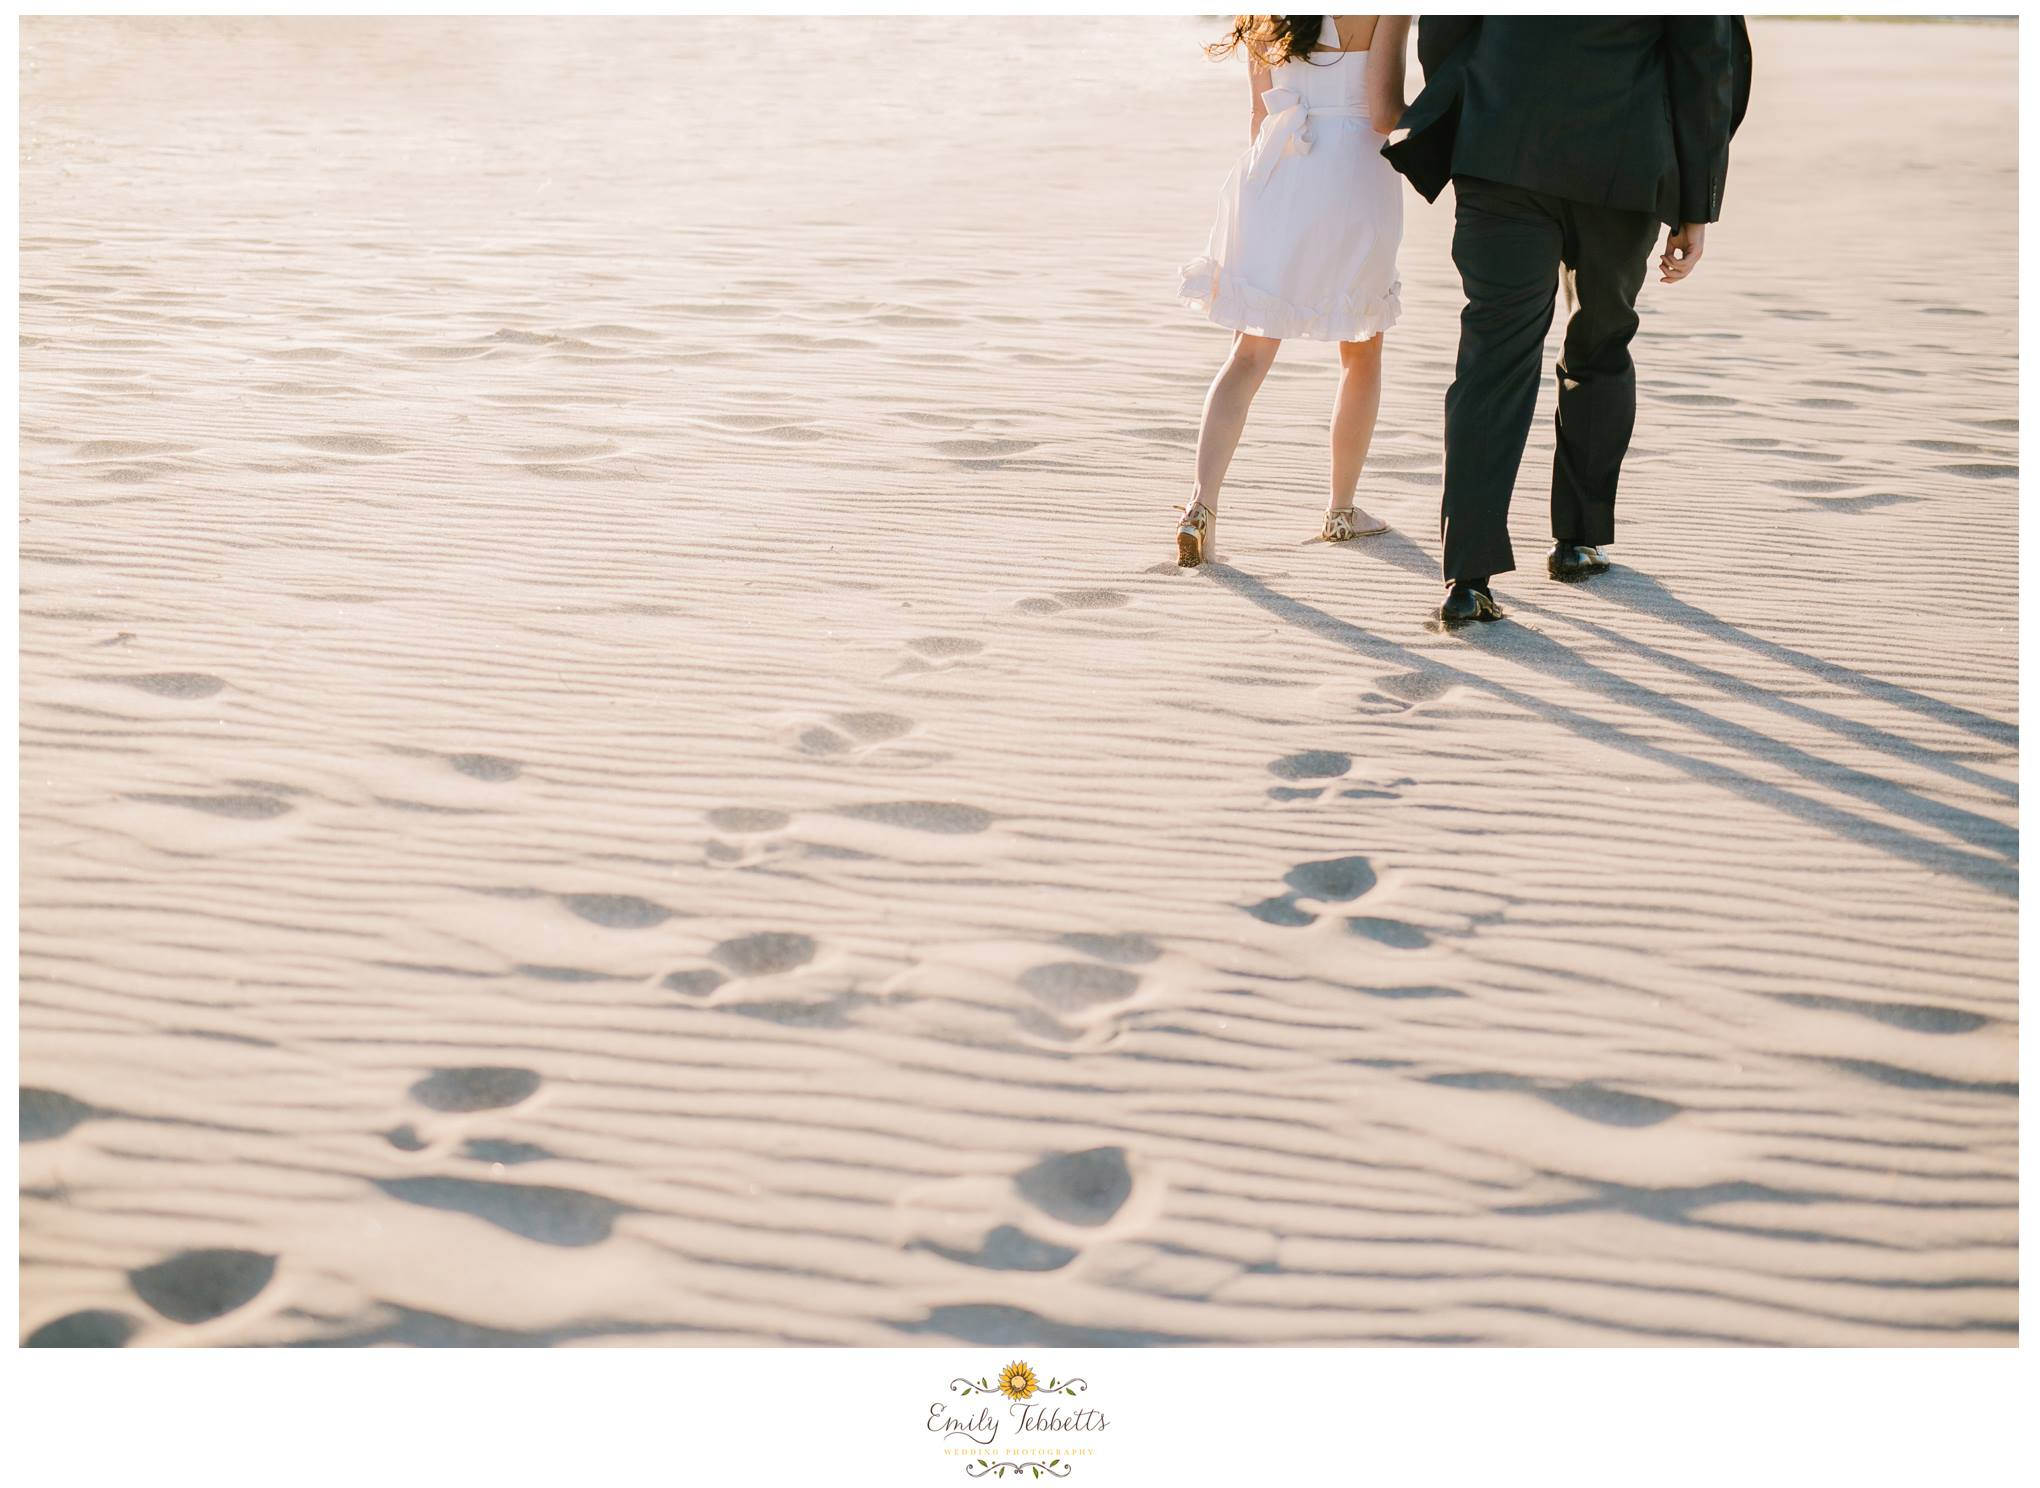 Emily Tebbetts Photography Engagement Session || Crane Beach, Ipswhich, MA 3.jpg